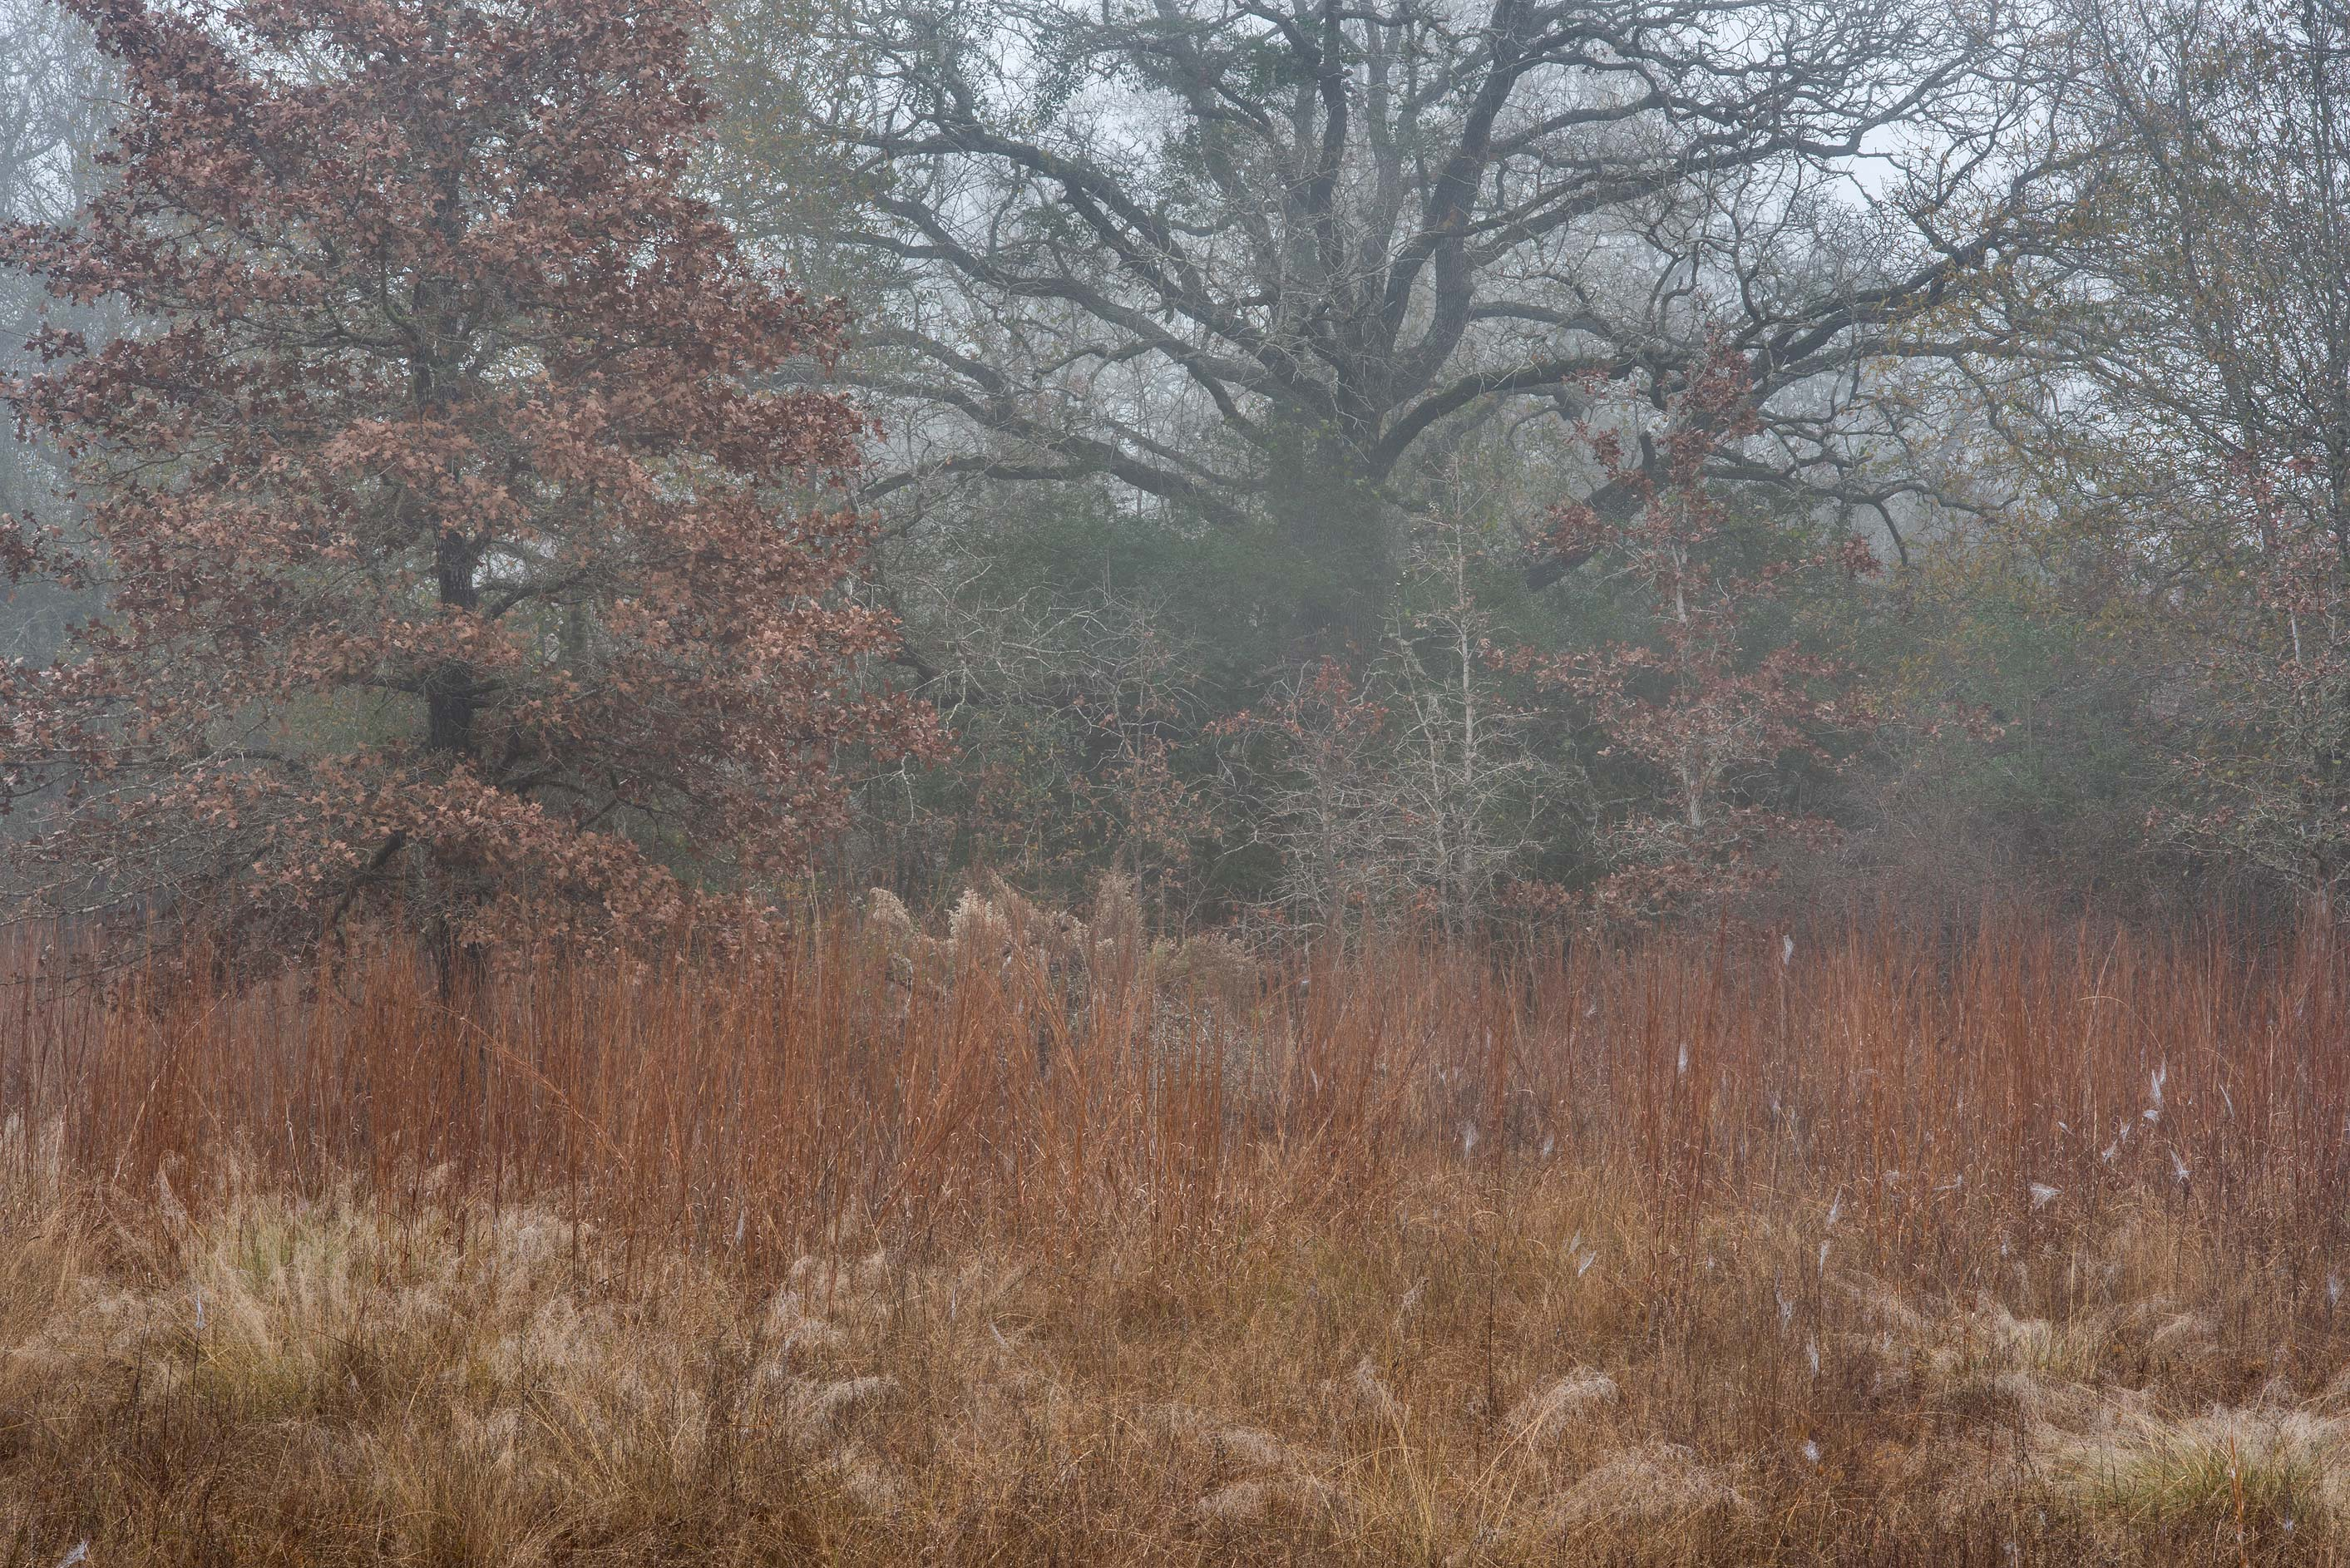 Prairie and oaks in fog in Lick Creek Park. College Station, Texas